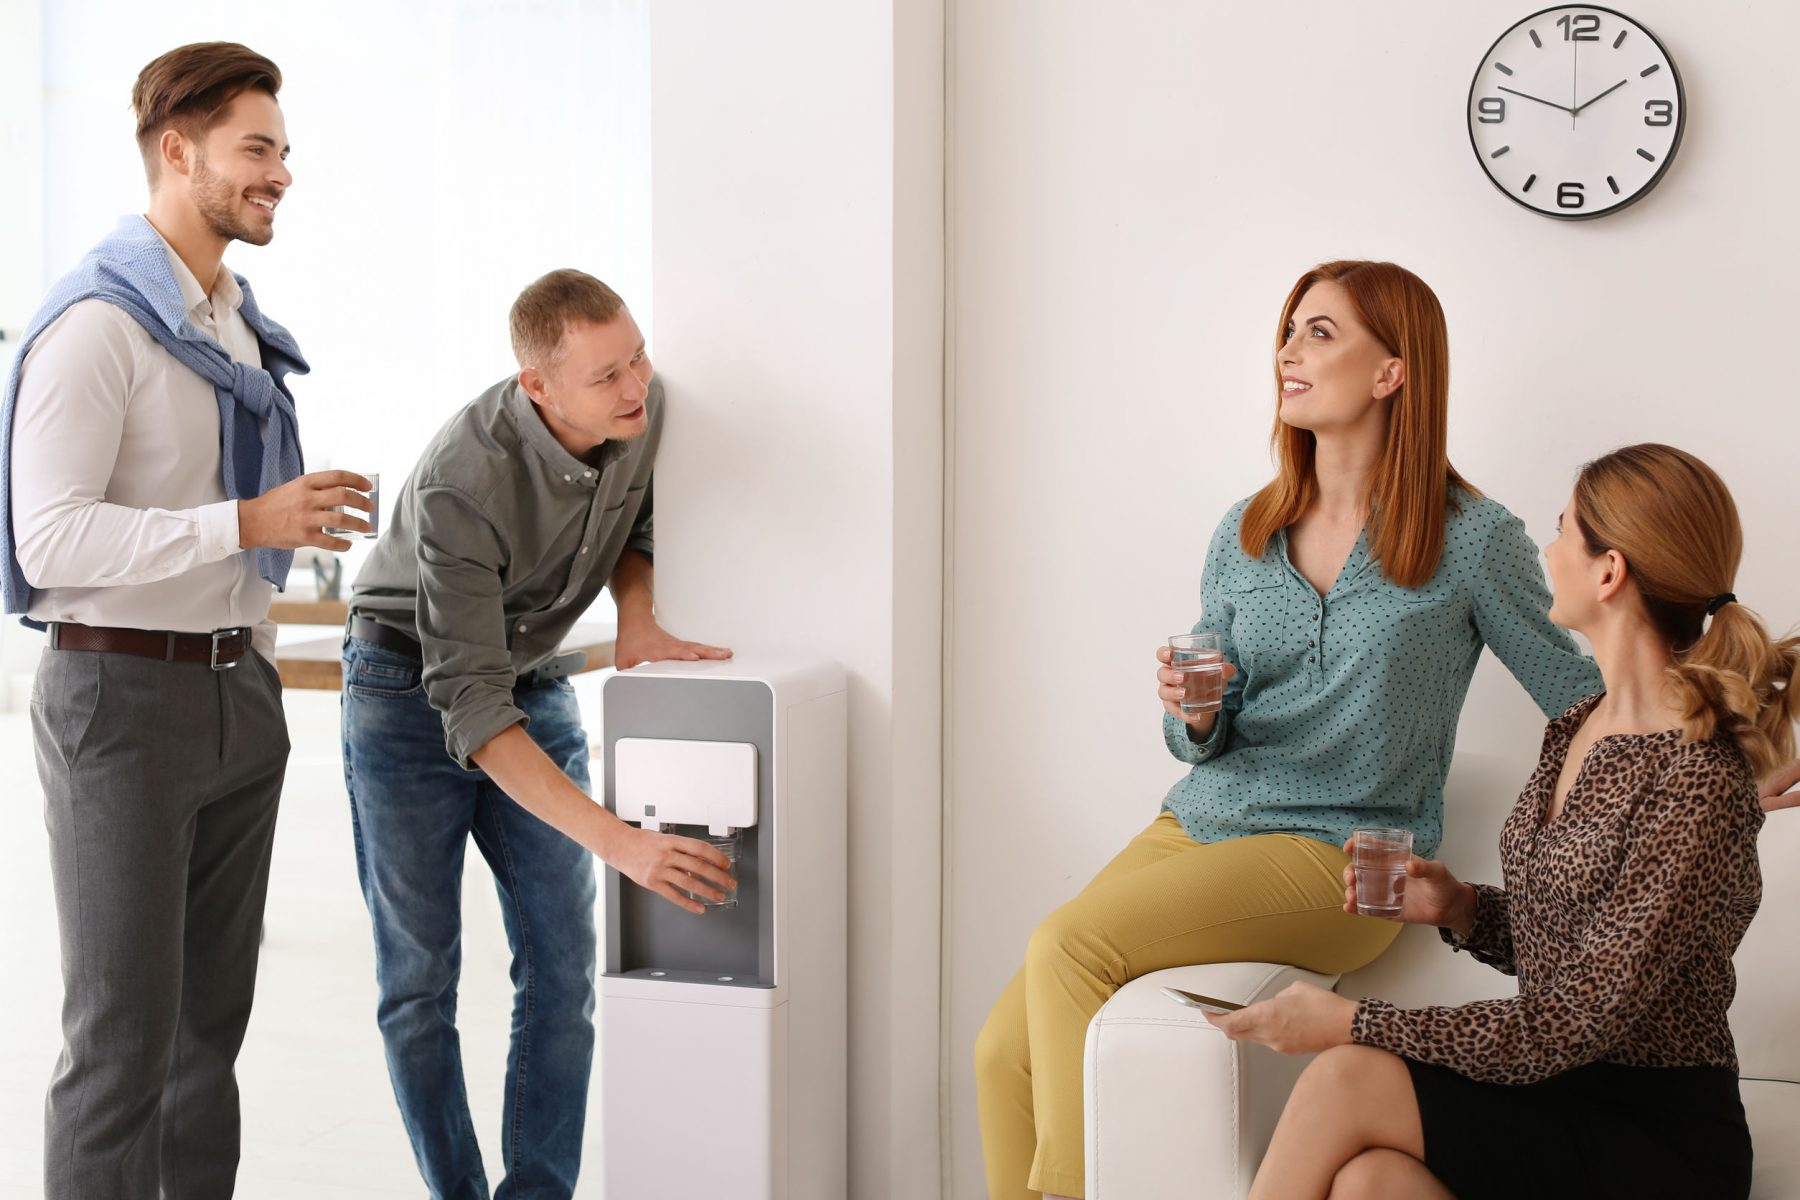 reduce conflict with colleagues by informal chat